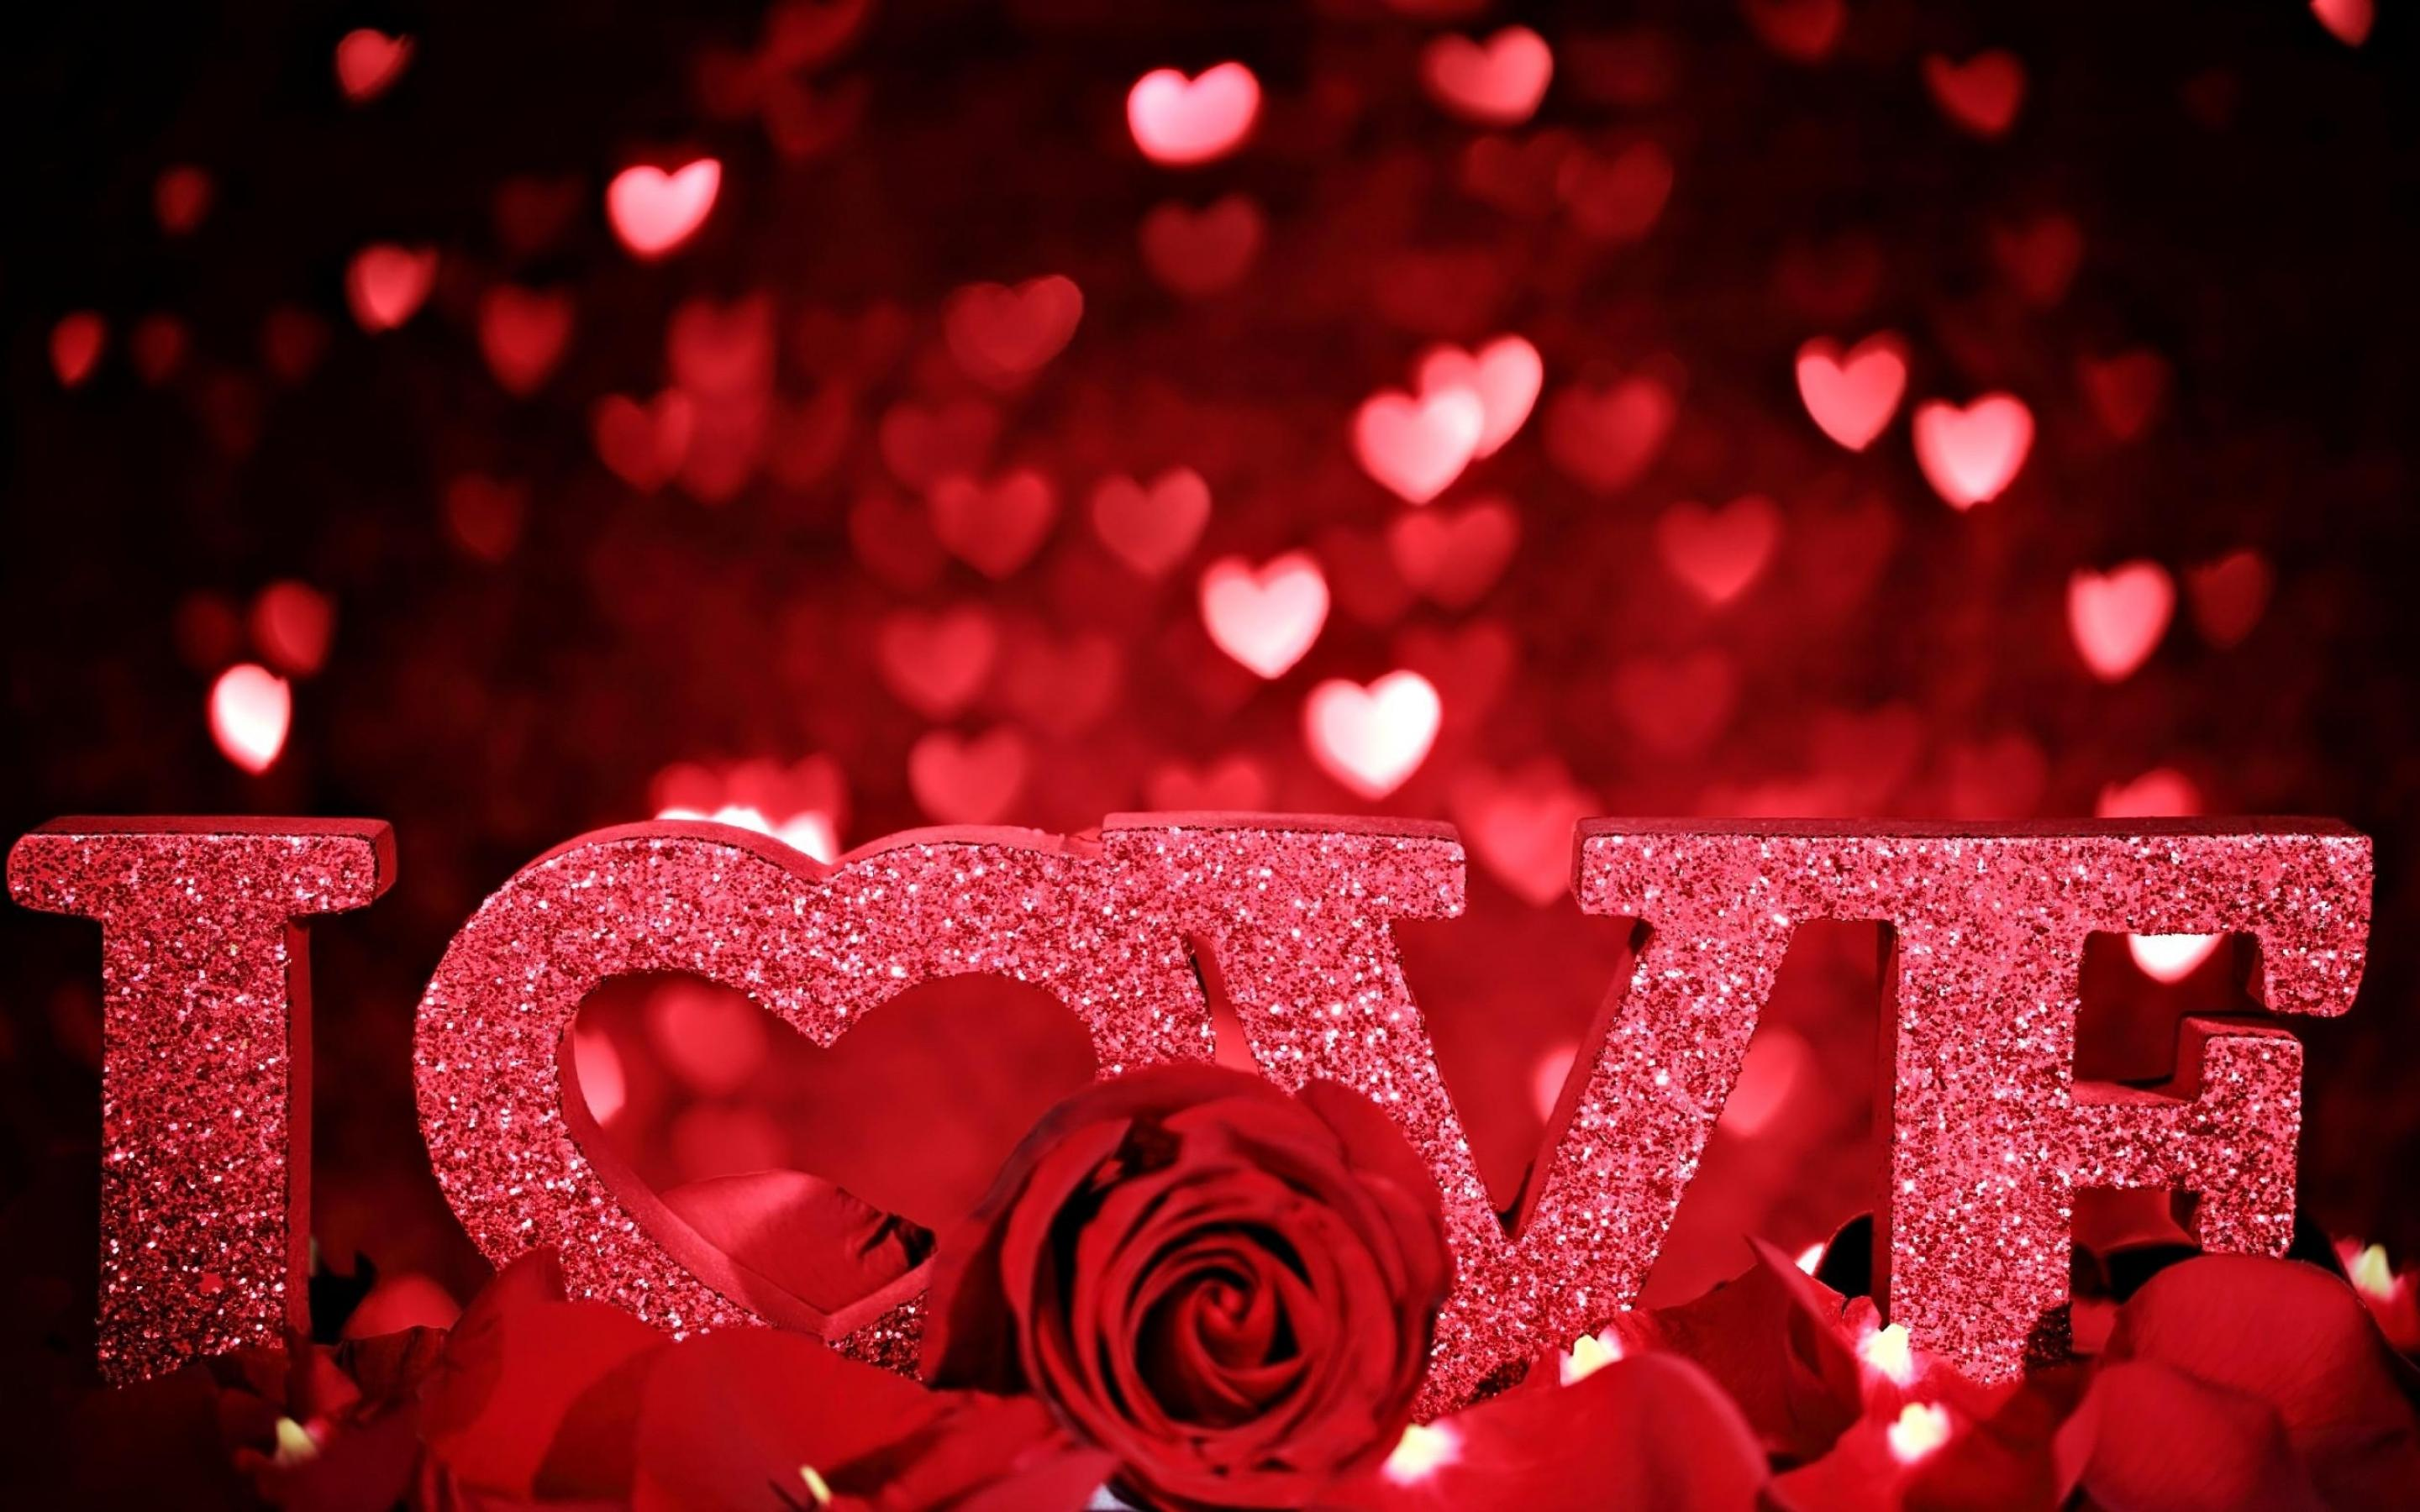 Valentines-Day-Love-Rose-Petals